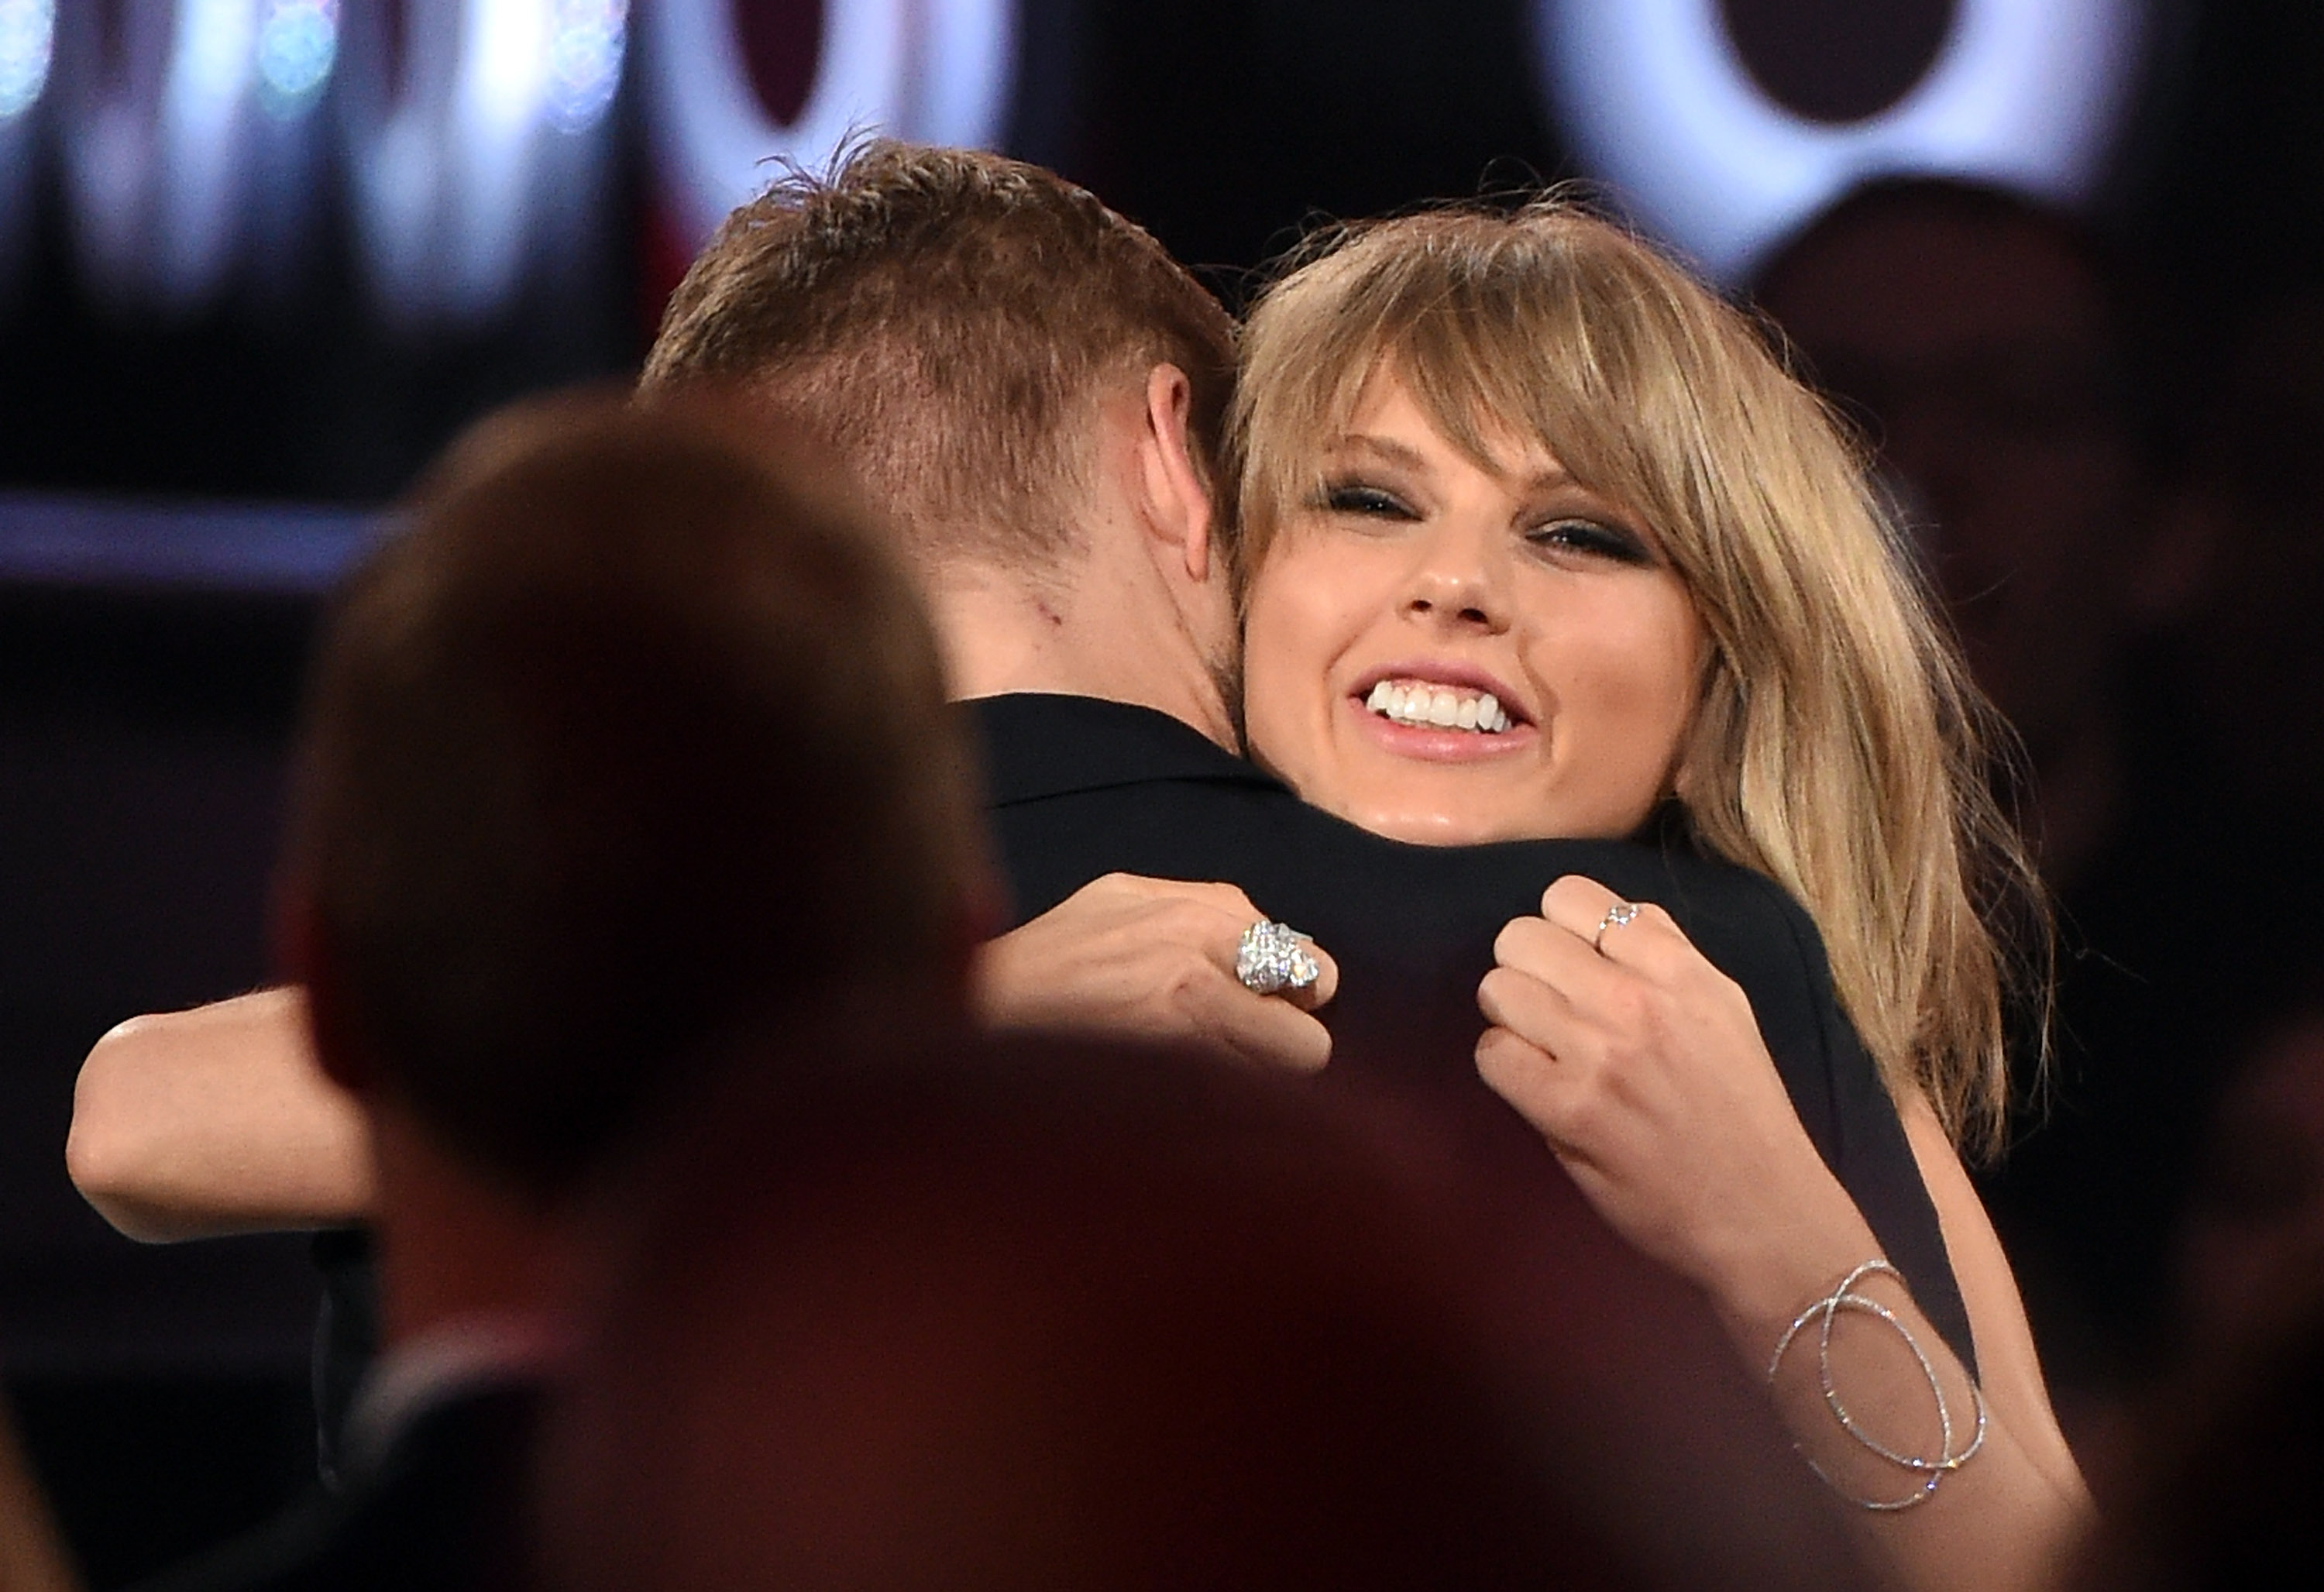 Recording artist Taylor Swift embraces DJ/producer Calvin Harris after she won the Top Billboard 200 Album award during the 2015 Billboard Music Awards at MGM Grand Garden Arena on May 17, 2015 in Las Vegas, Nevada.